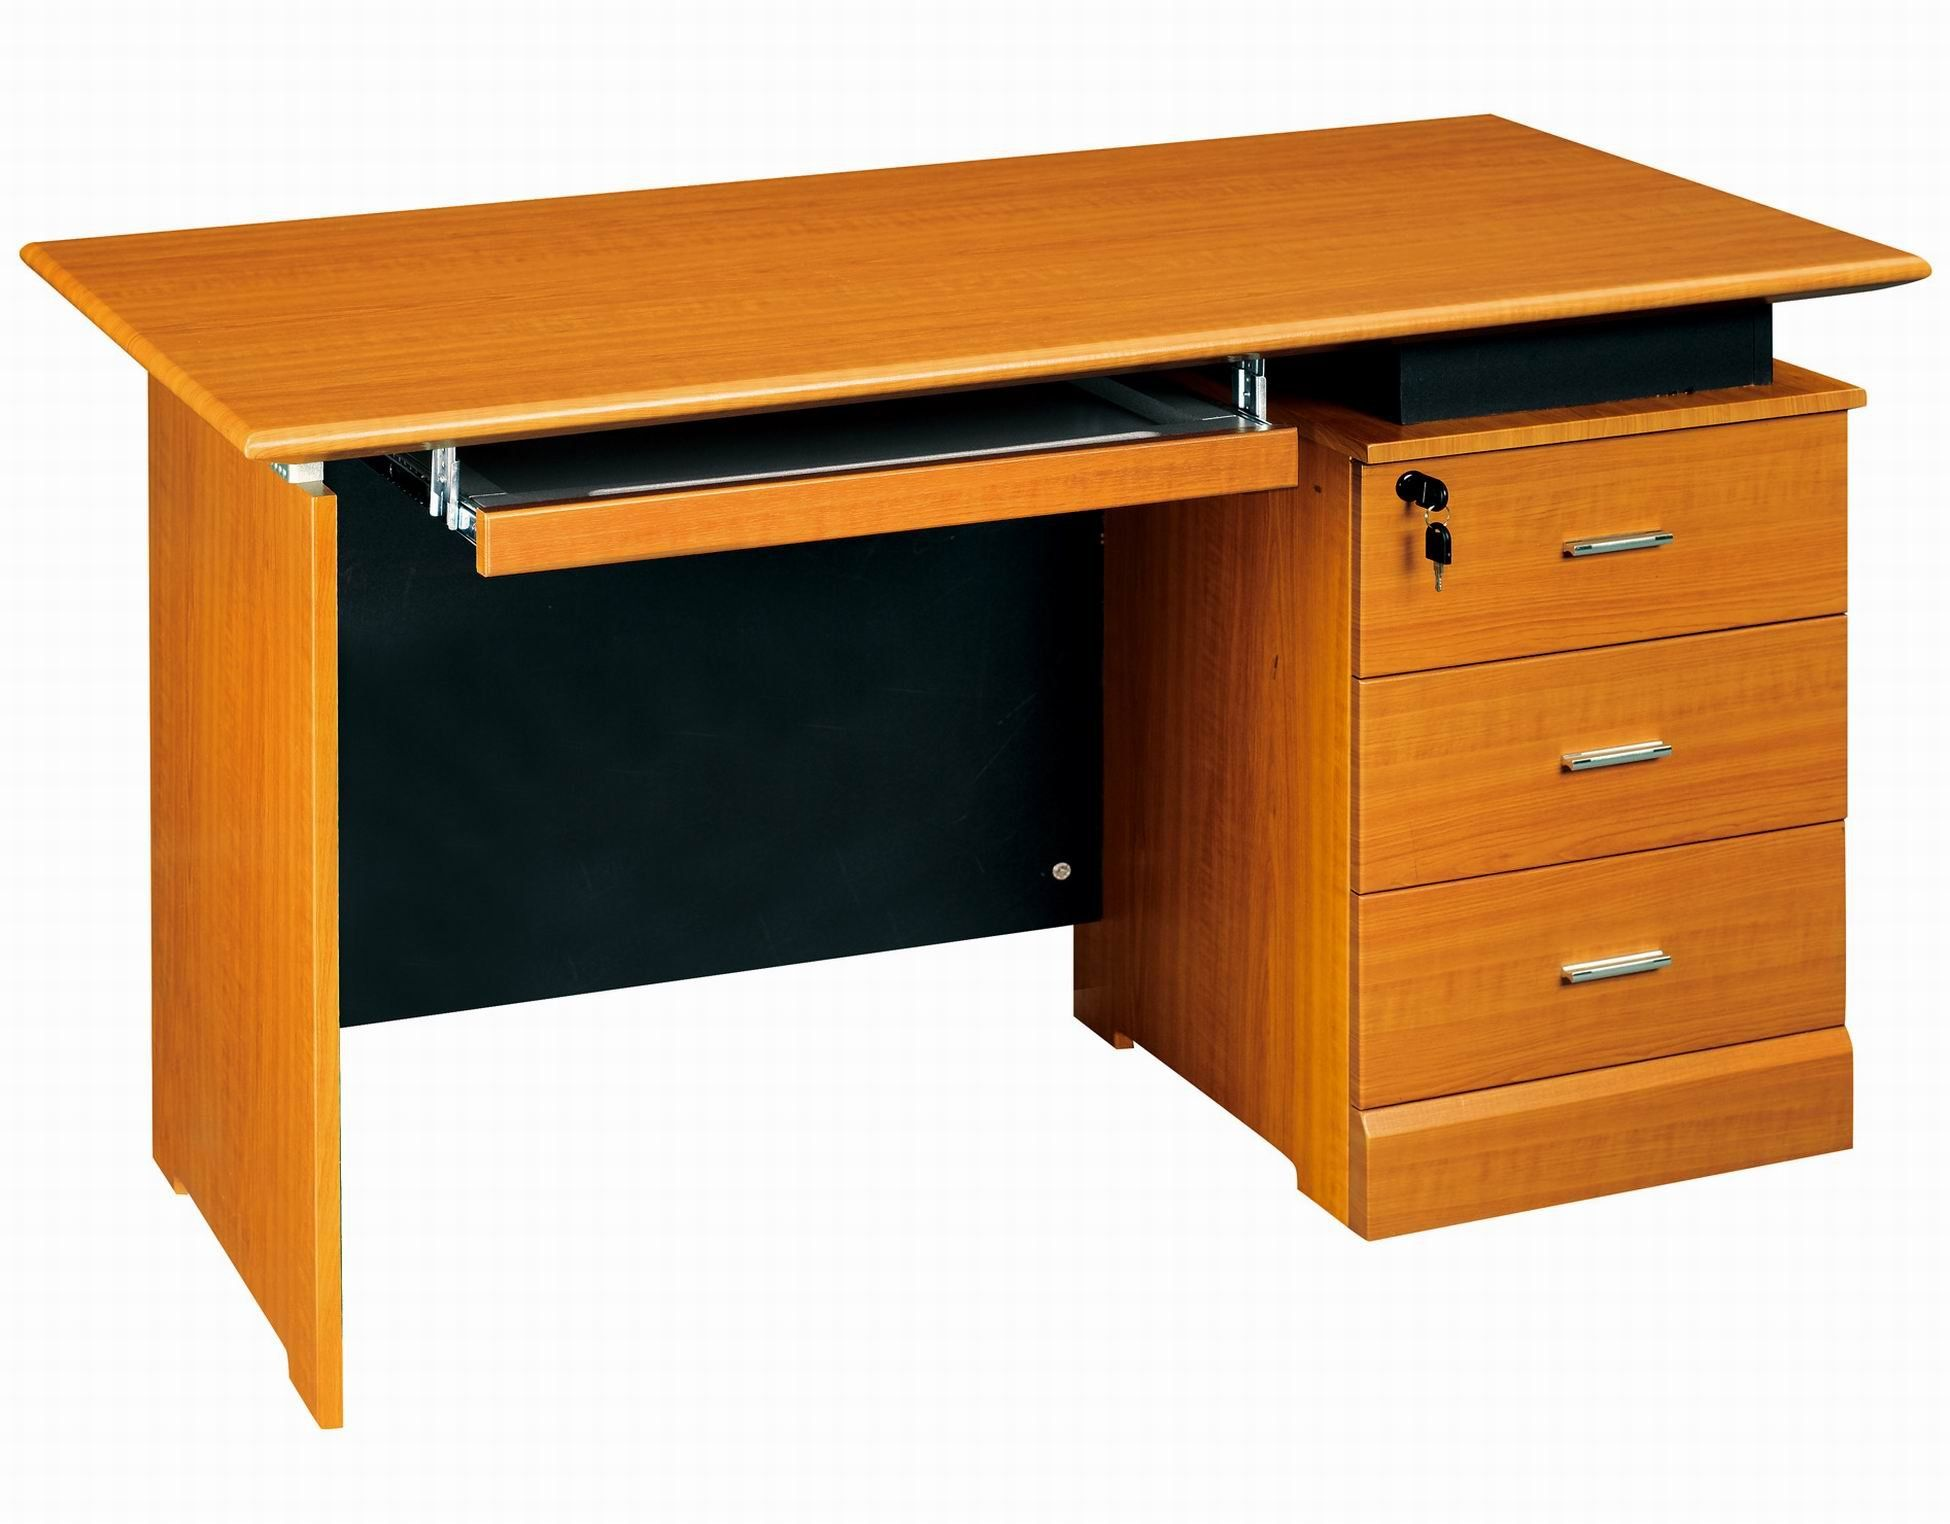 buy office table. buy office table online